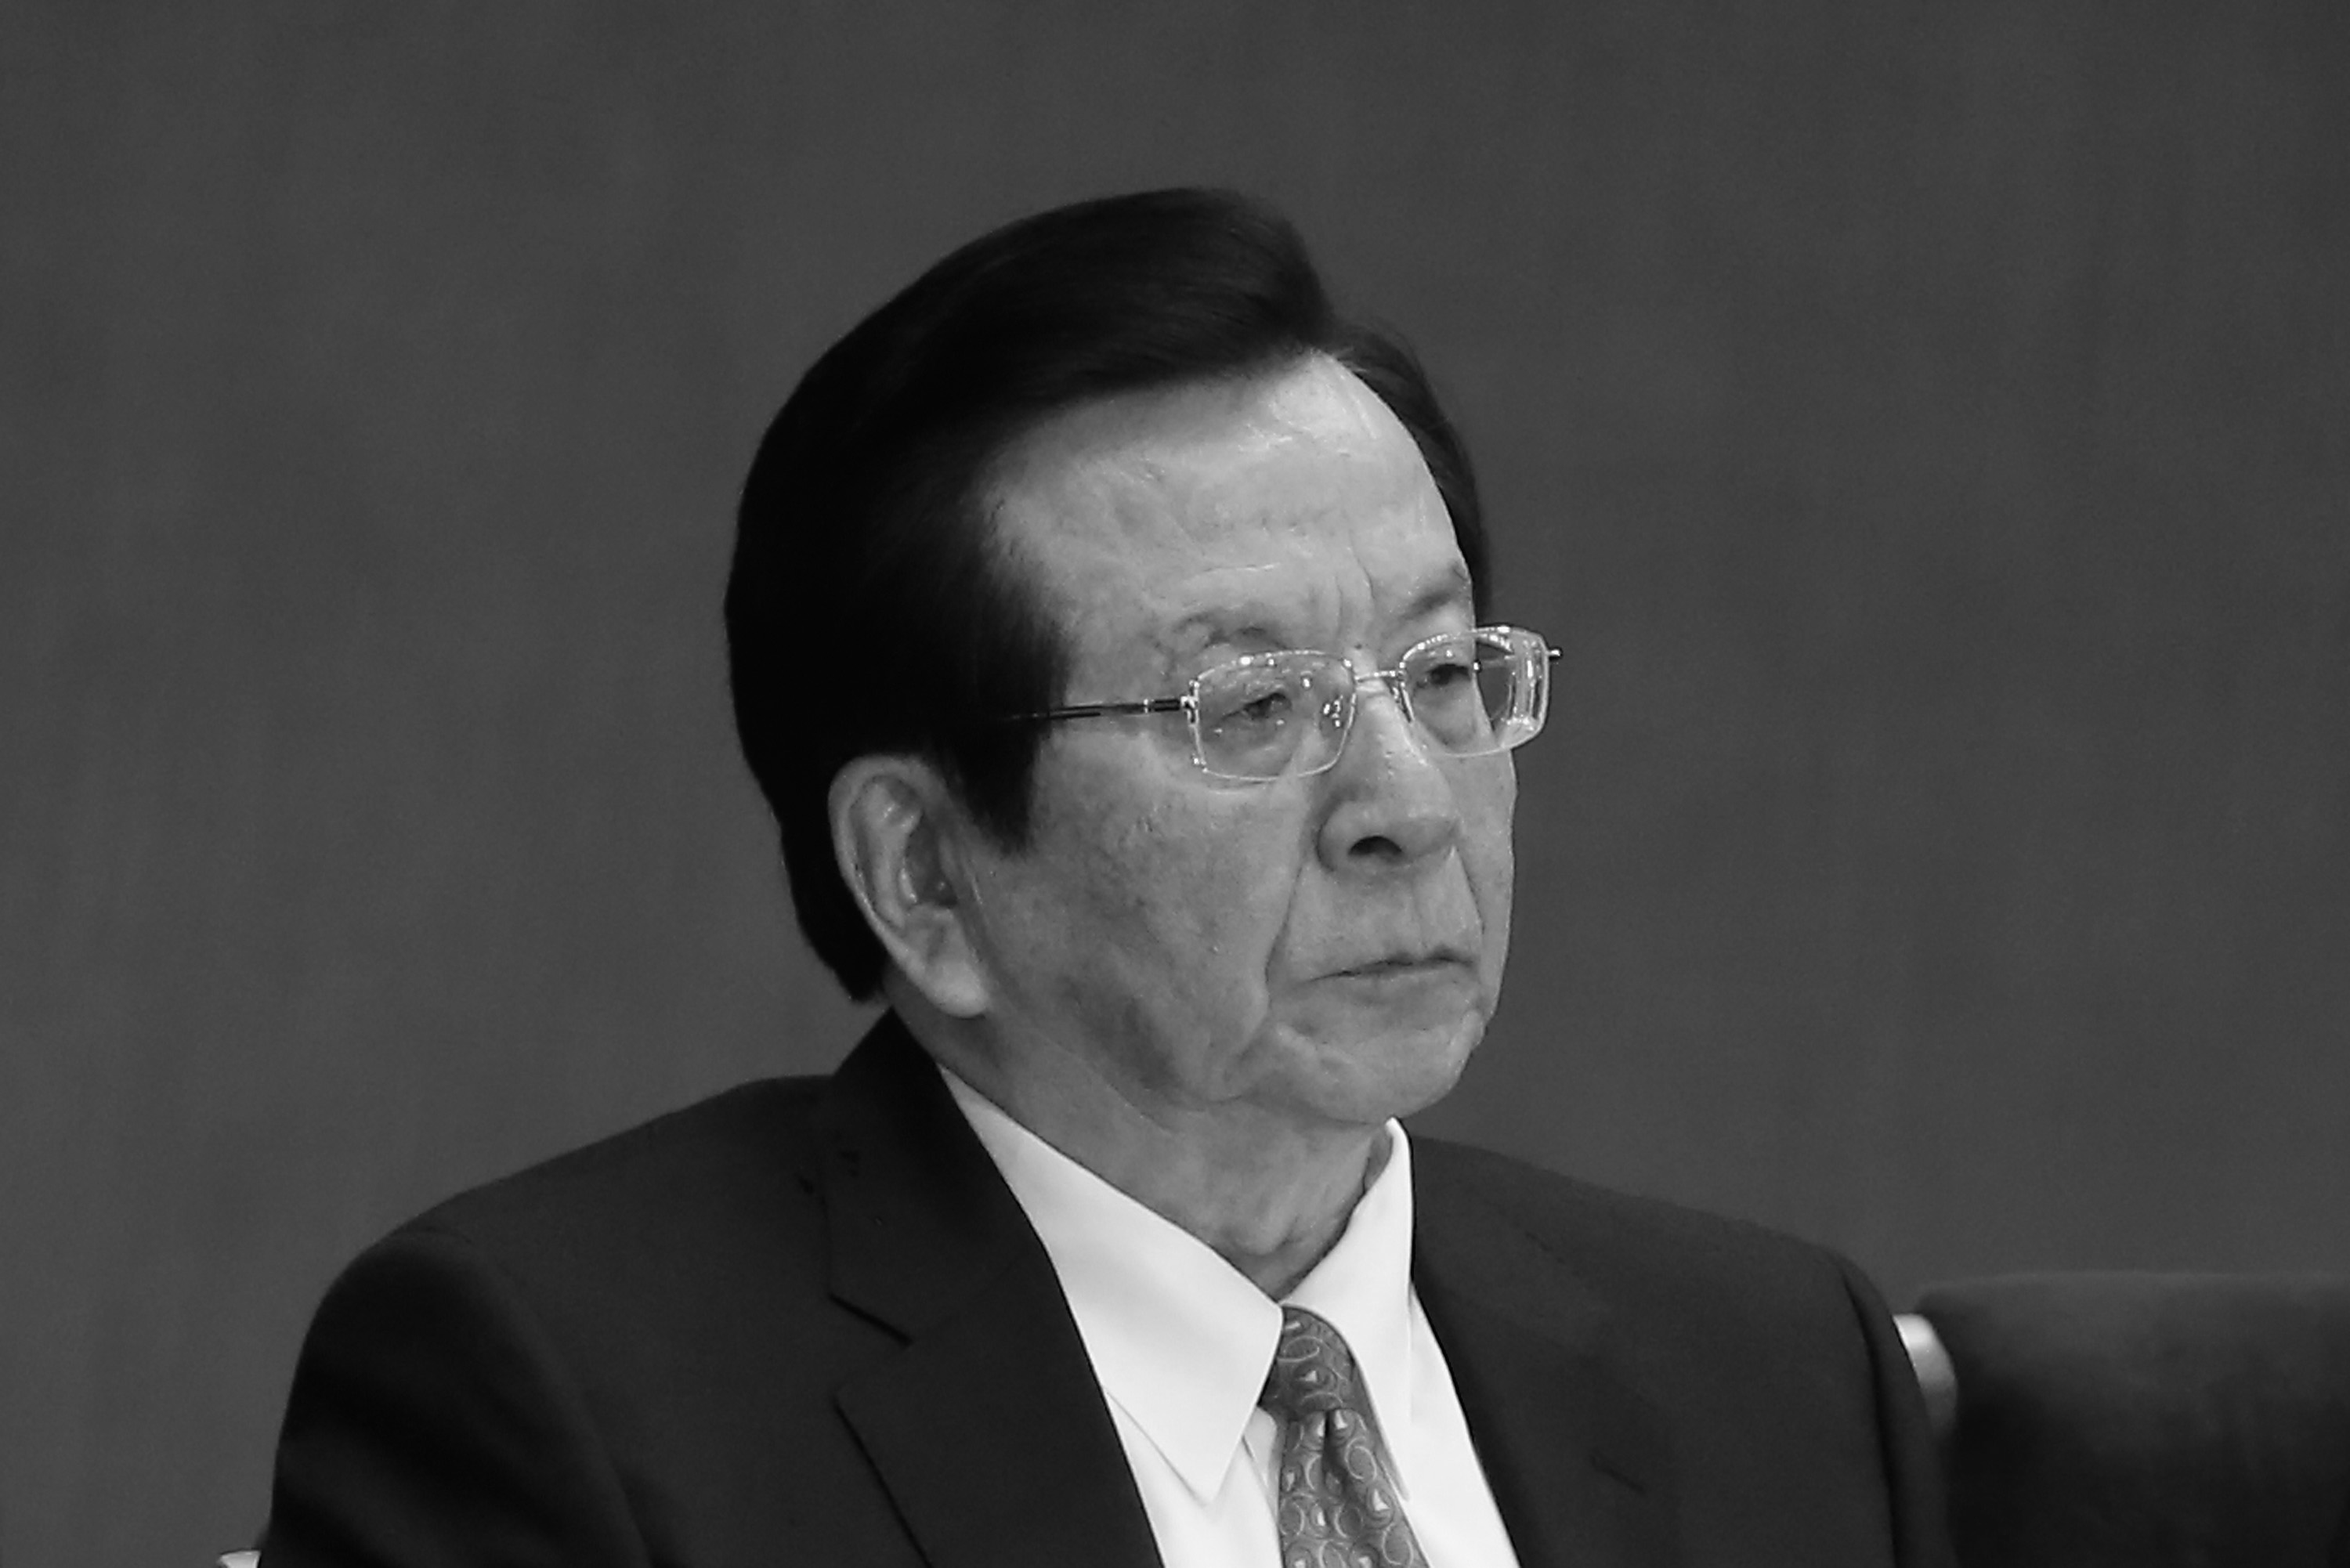 Former Chinese Vice President Zeng Qinghong attends the opening session of the 18th Communist Party Congress held at the Great Hall of the People in Beijing, China on Nov. 8, 2012. (Feng Li/Getty Images)